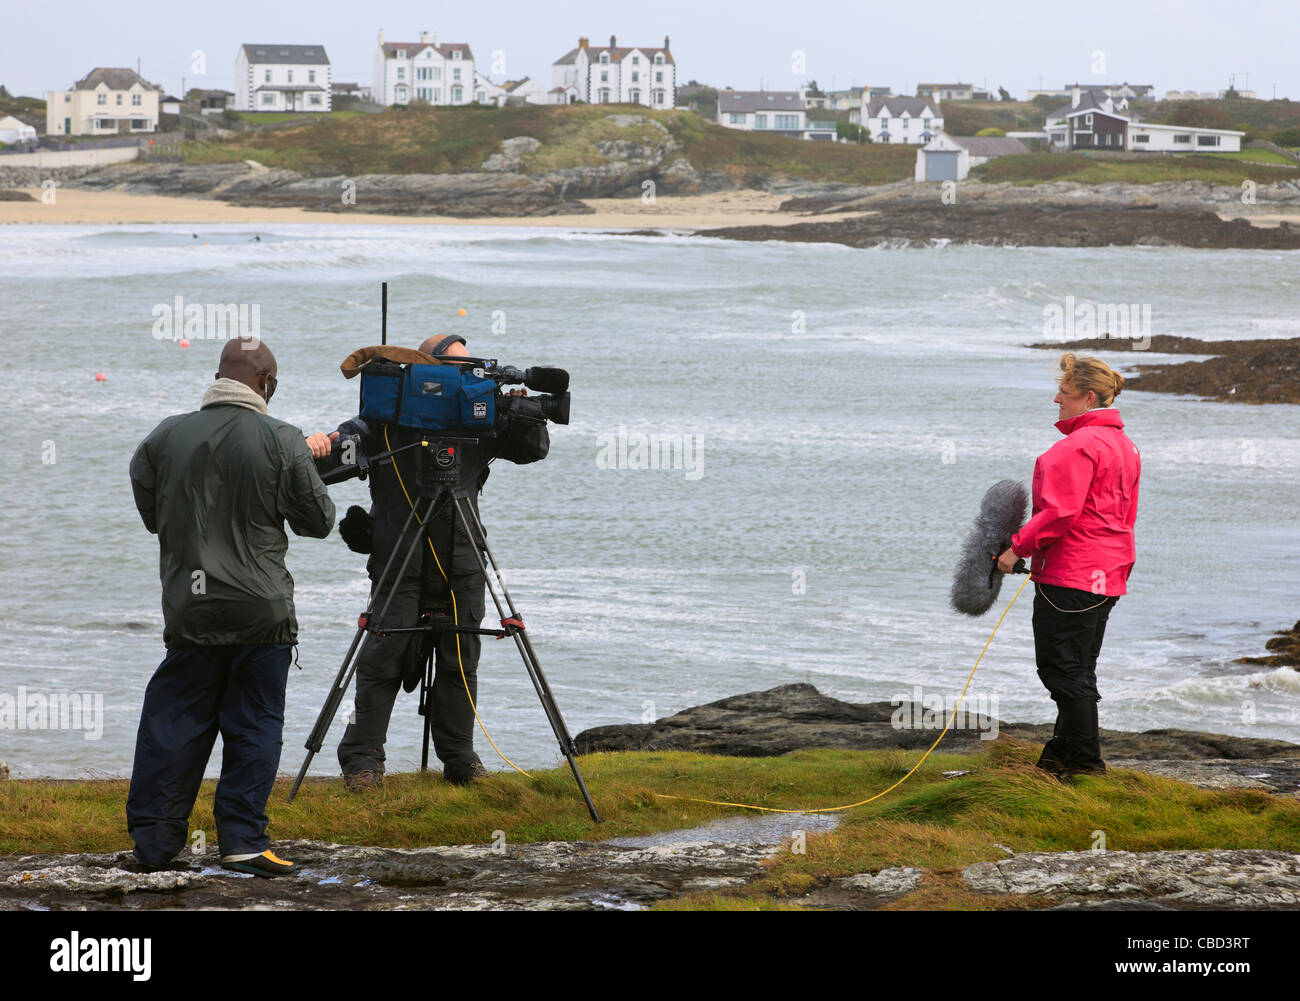 UK BBC live news reporter and camera crew reporting severe windy weather with gales on Welsh west coast. - Stock Image